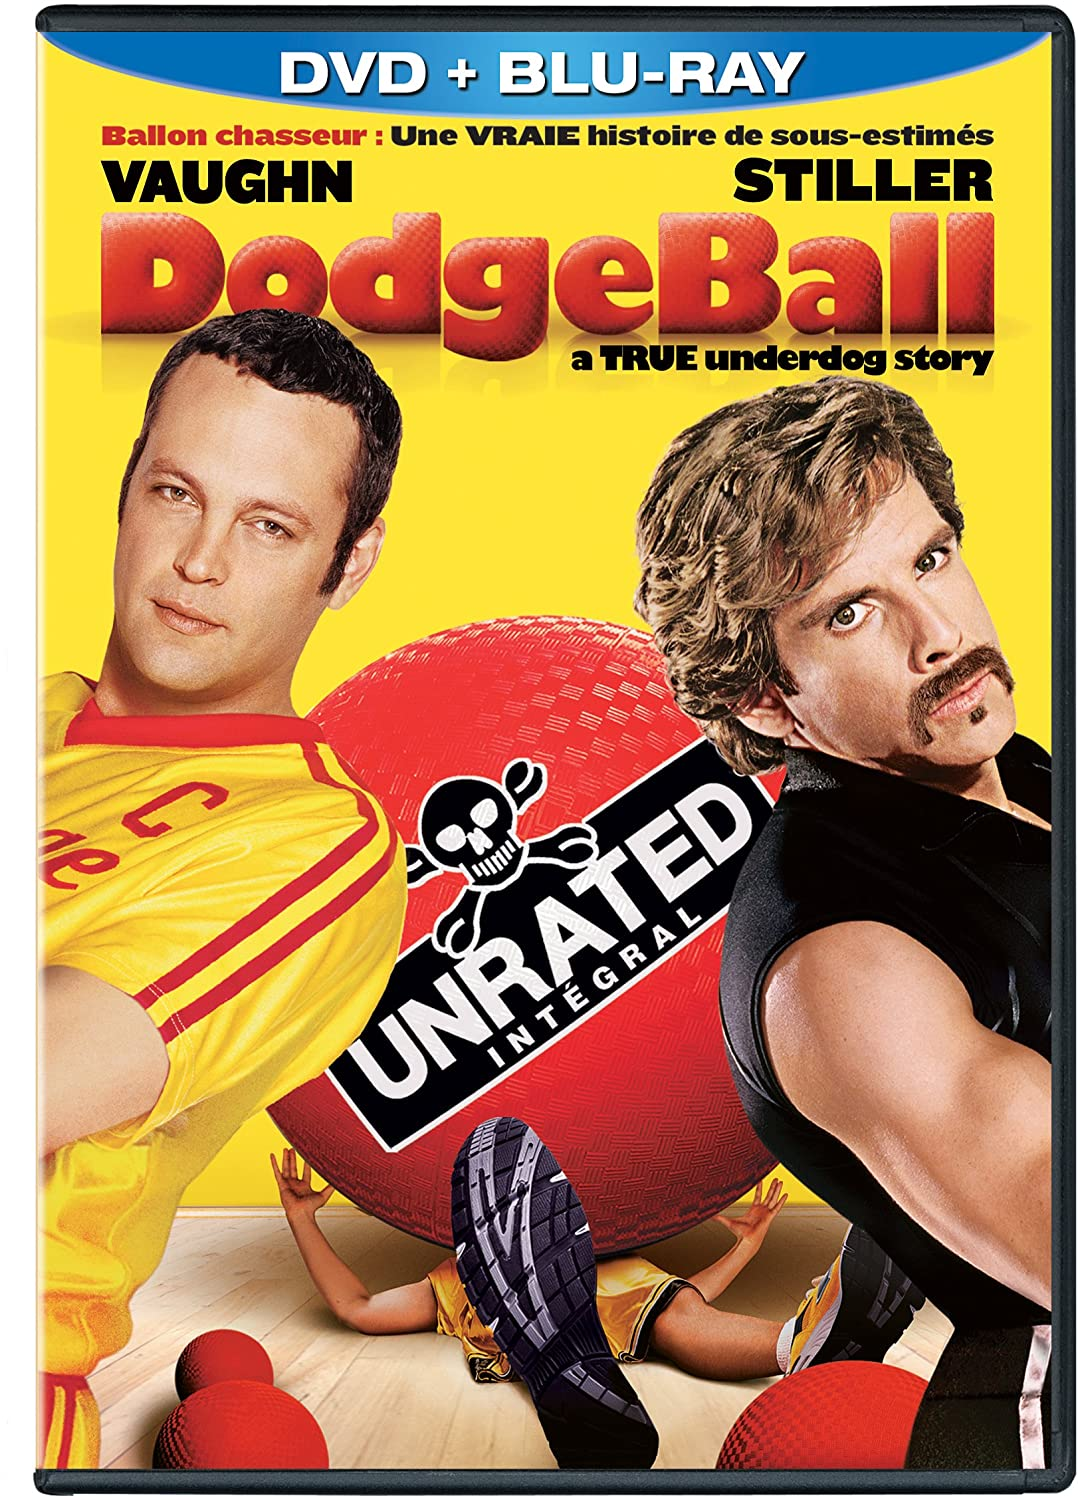 Dodgeball: True Story Underdog Limited price sale Now on sale